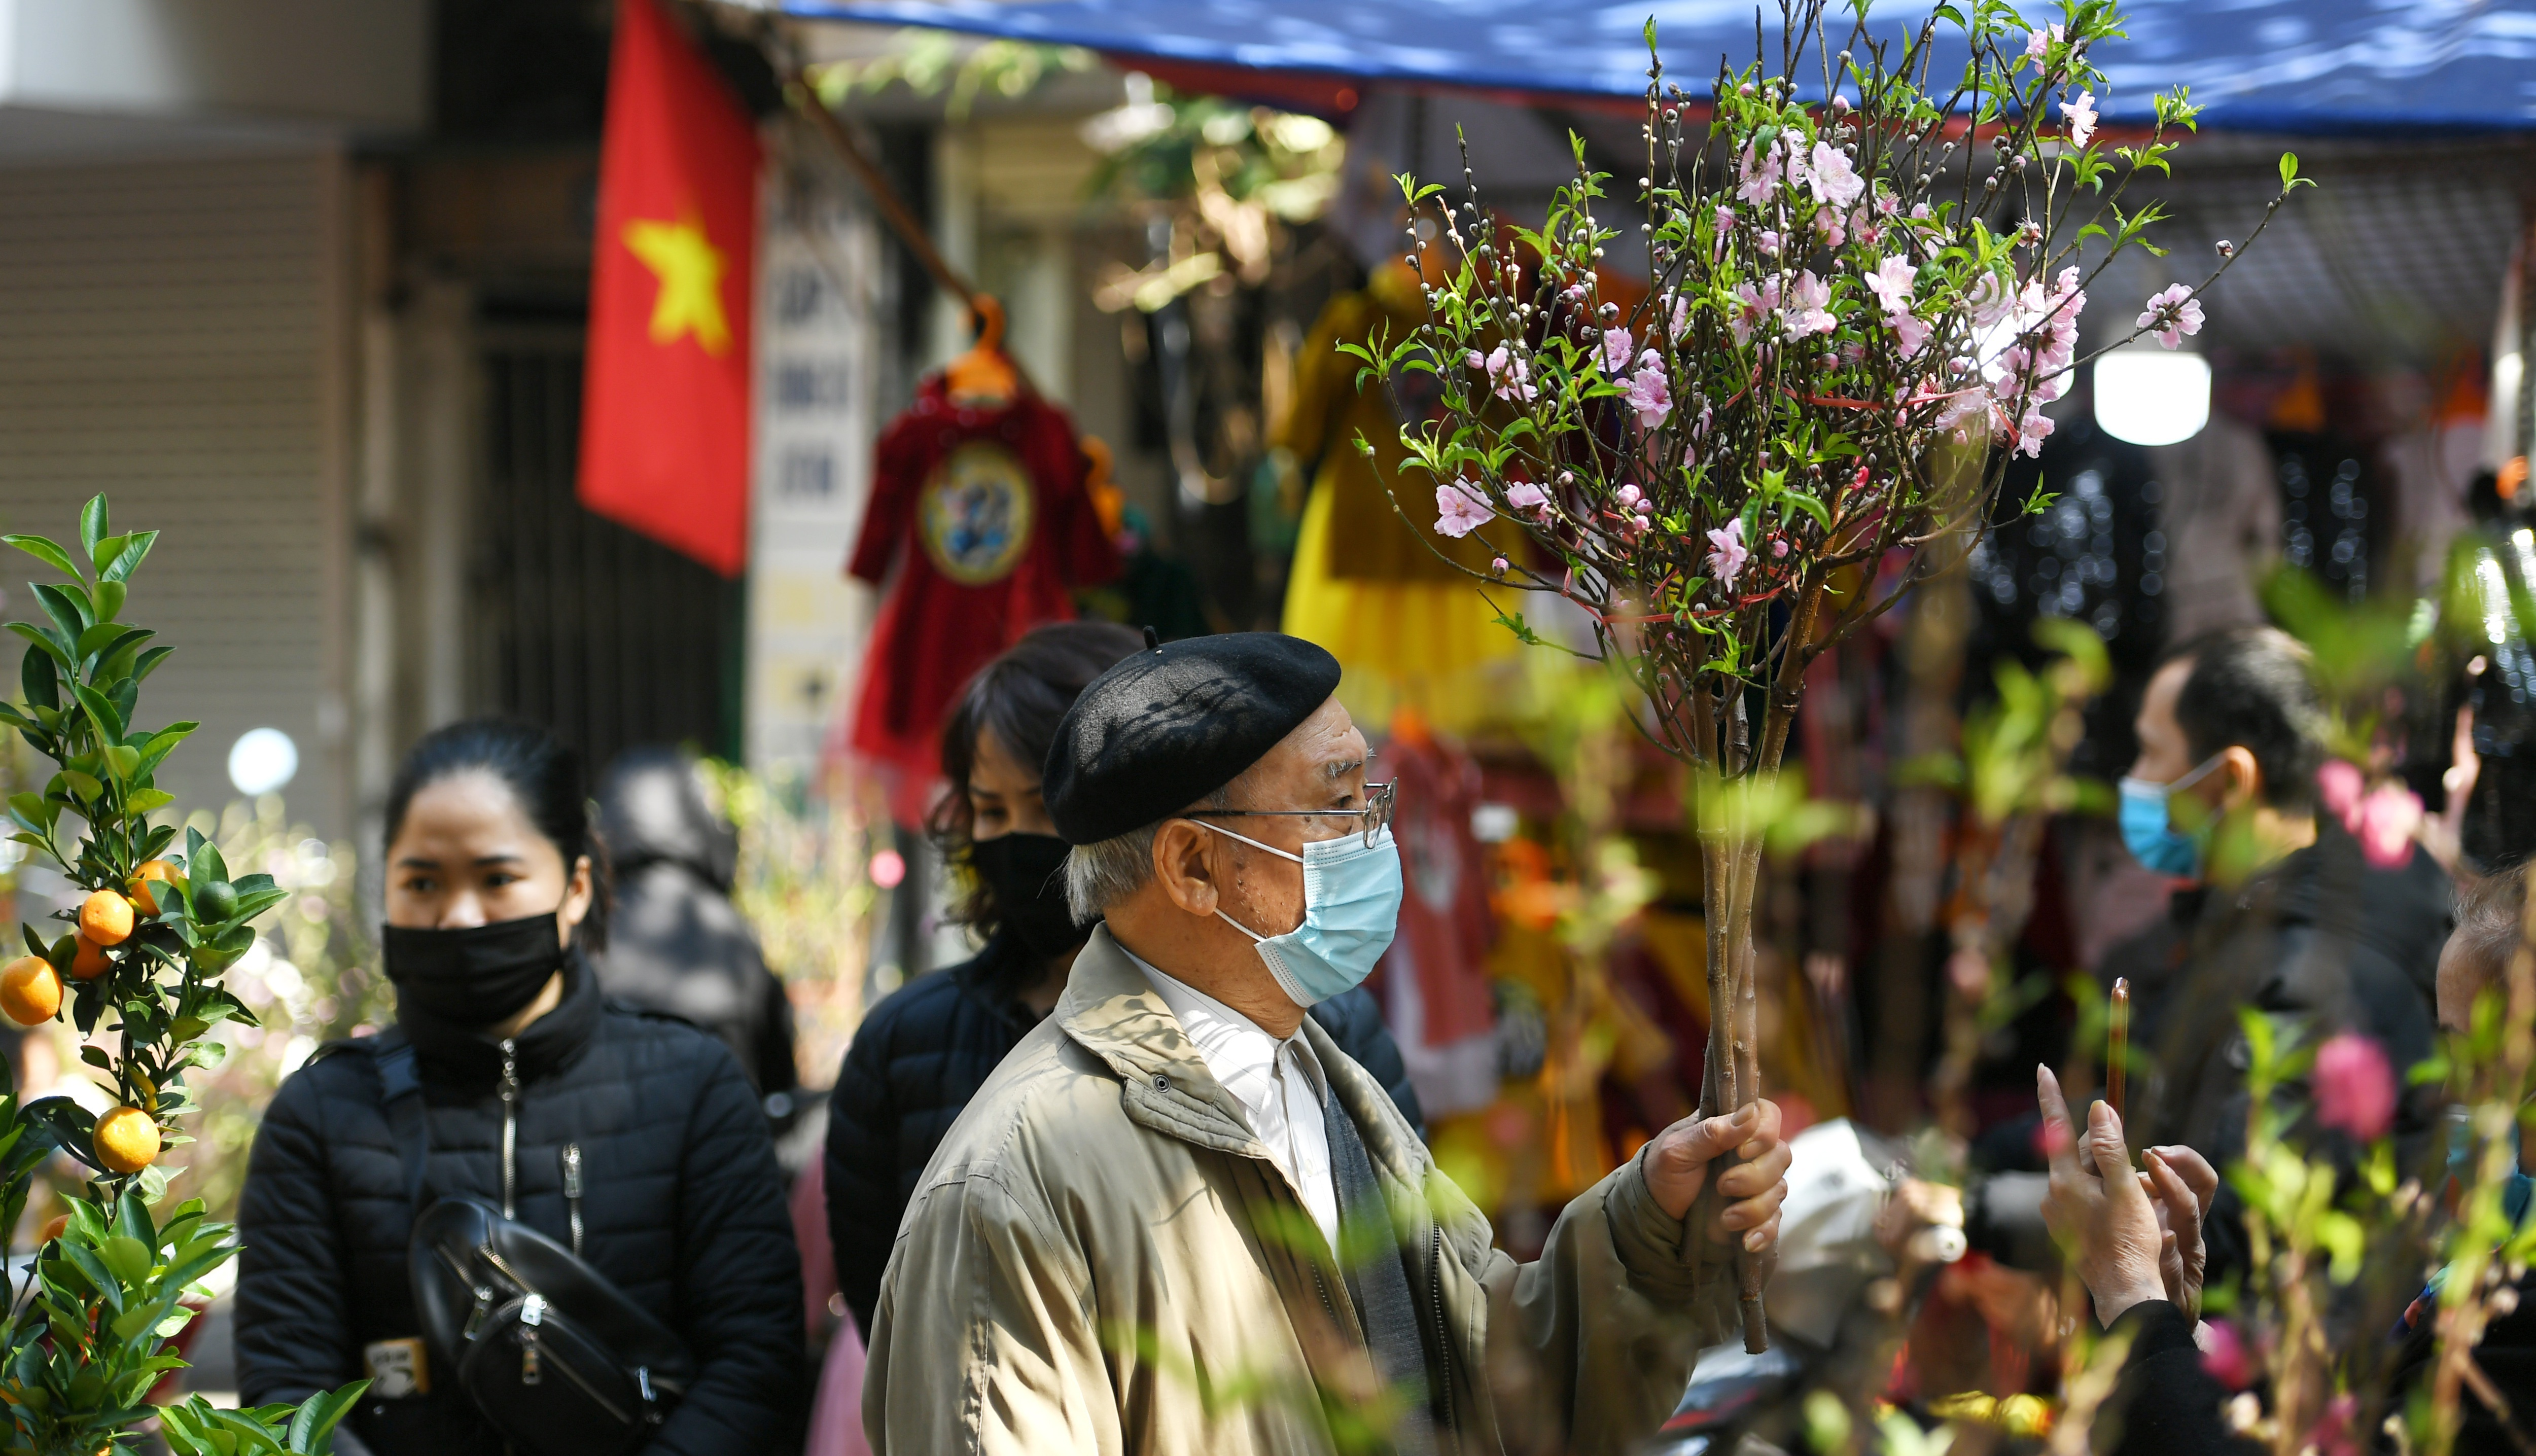 The sunshine came back and filled the streets of Hanoi on the 29th of Tet - 8